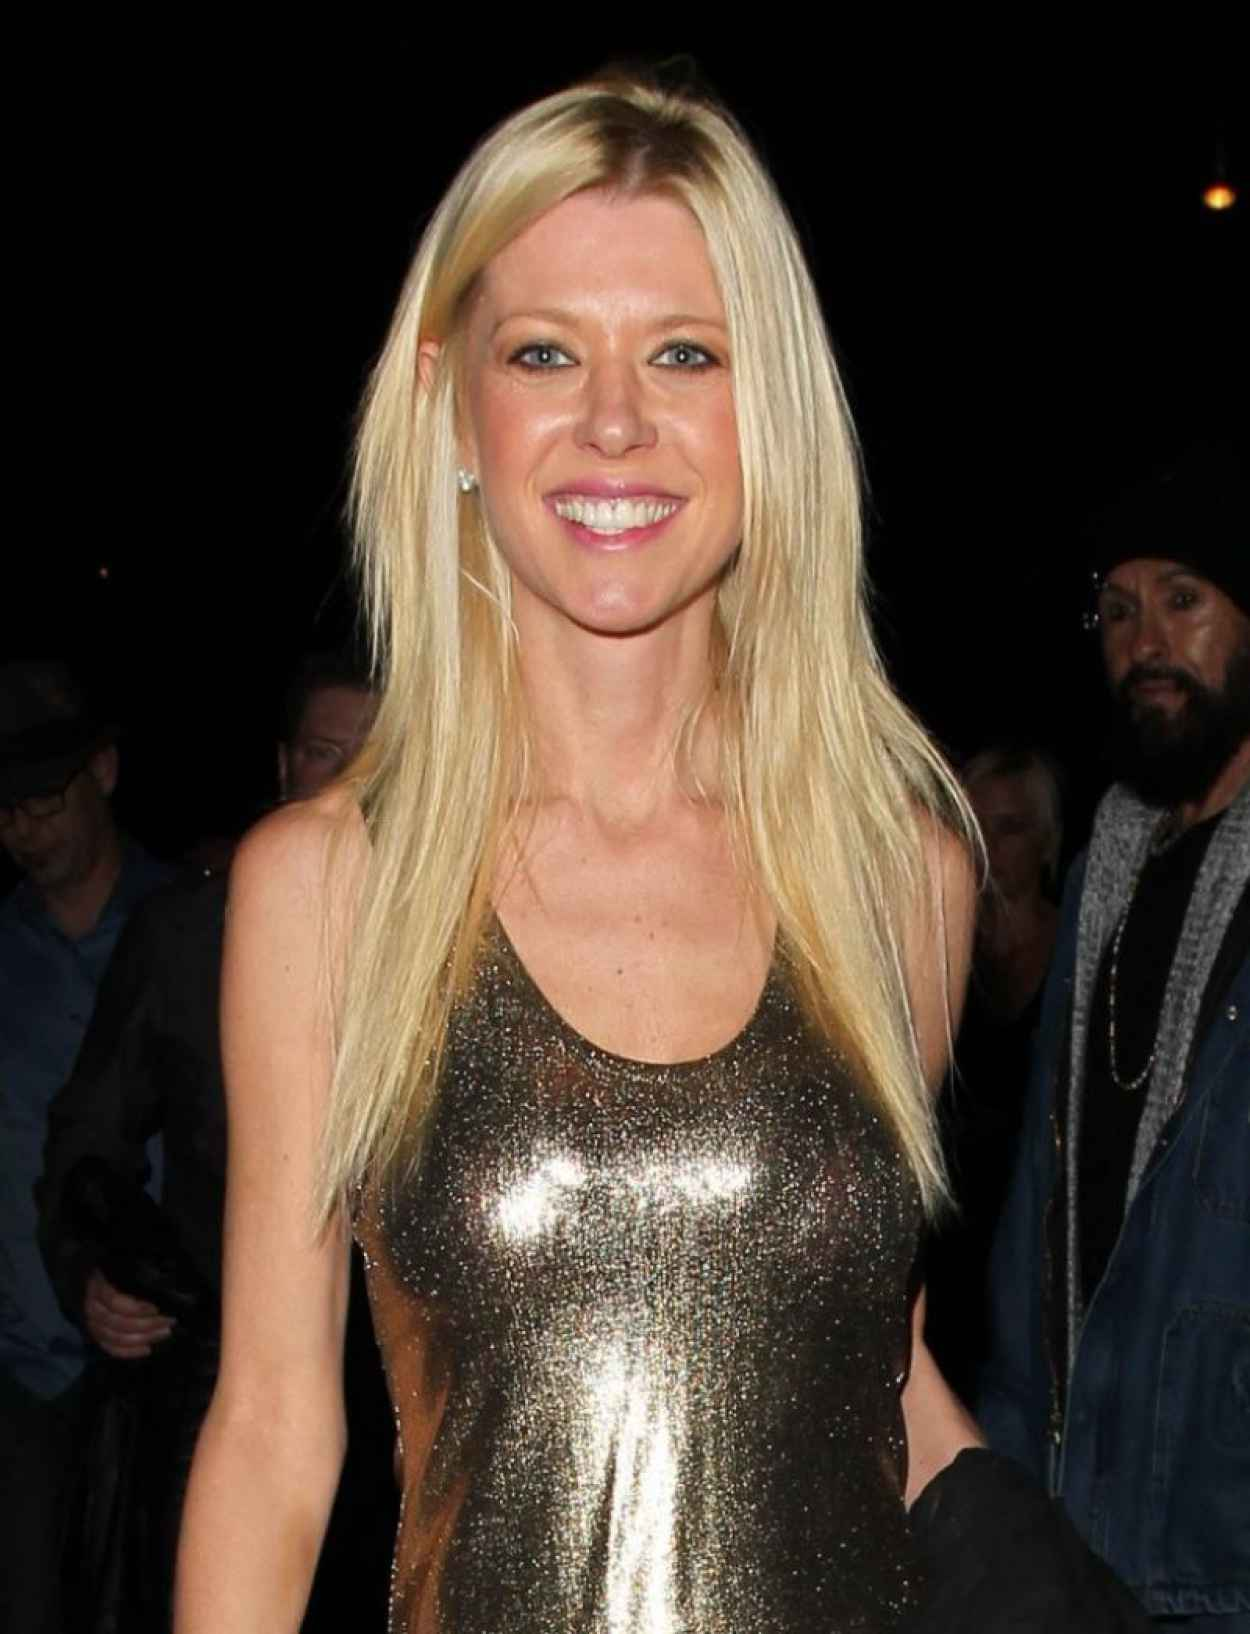 Tara Reid Night Out Style - Leaving the Roxy in West Hollywood, Dec. 2015-1